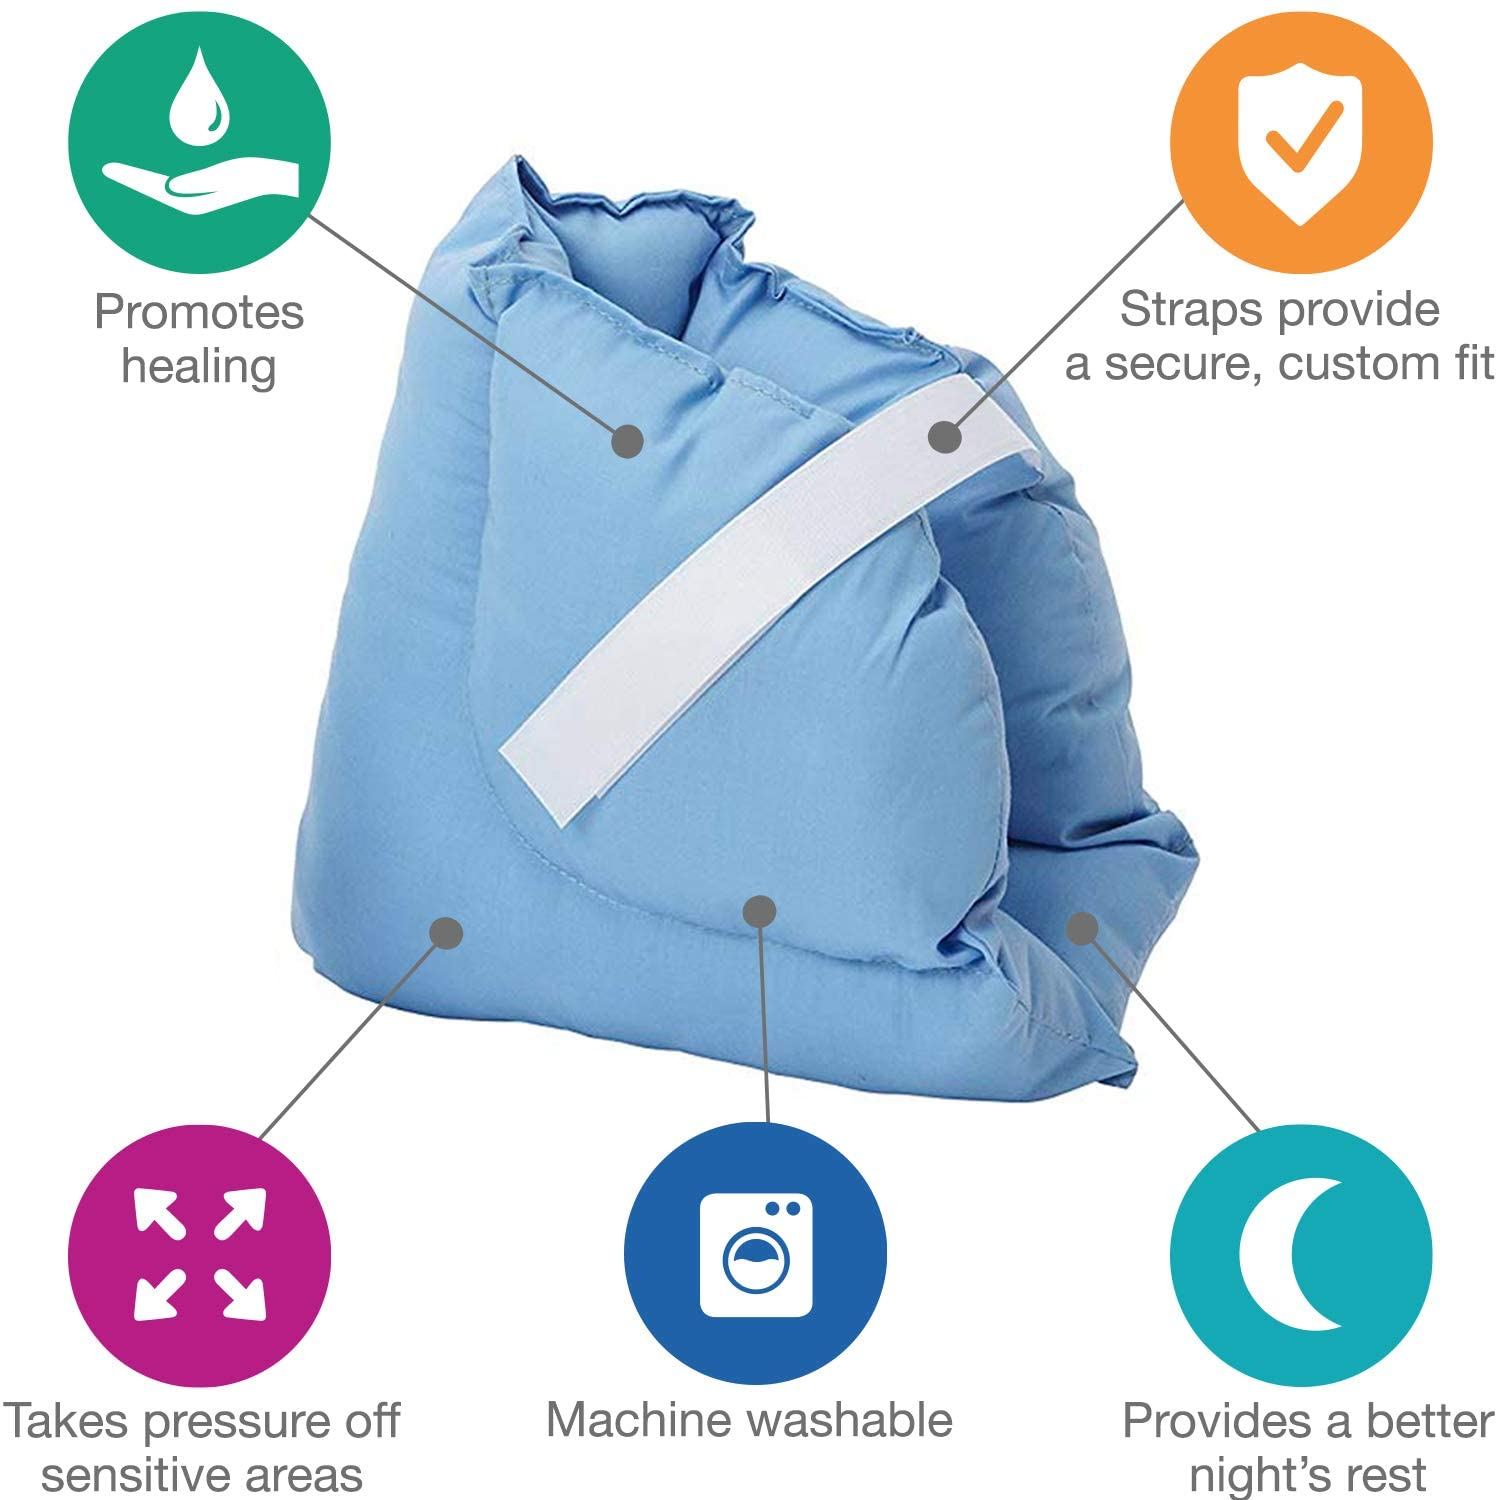 DMI Heel Cushion Protector Pillow to Relieve Pressure from Sores and Ulcers, Adjustable in Size, Blue: Health & Personal Care